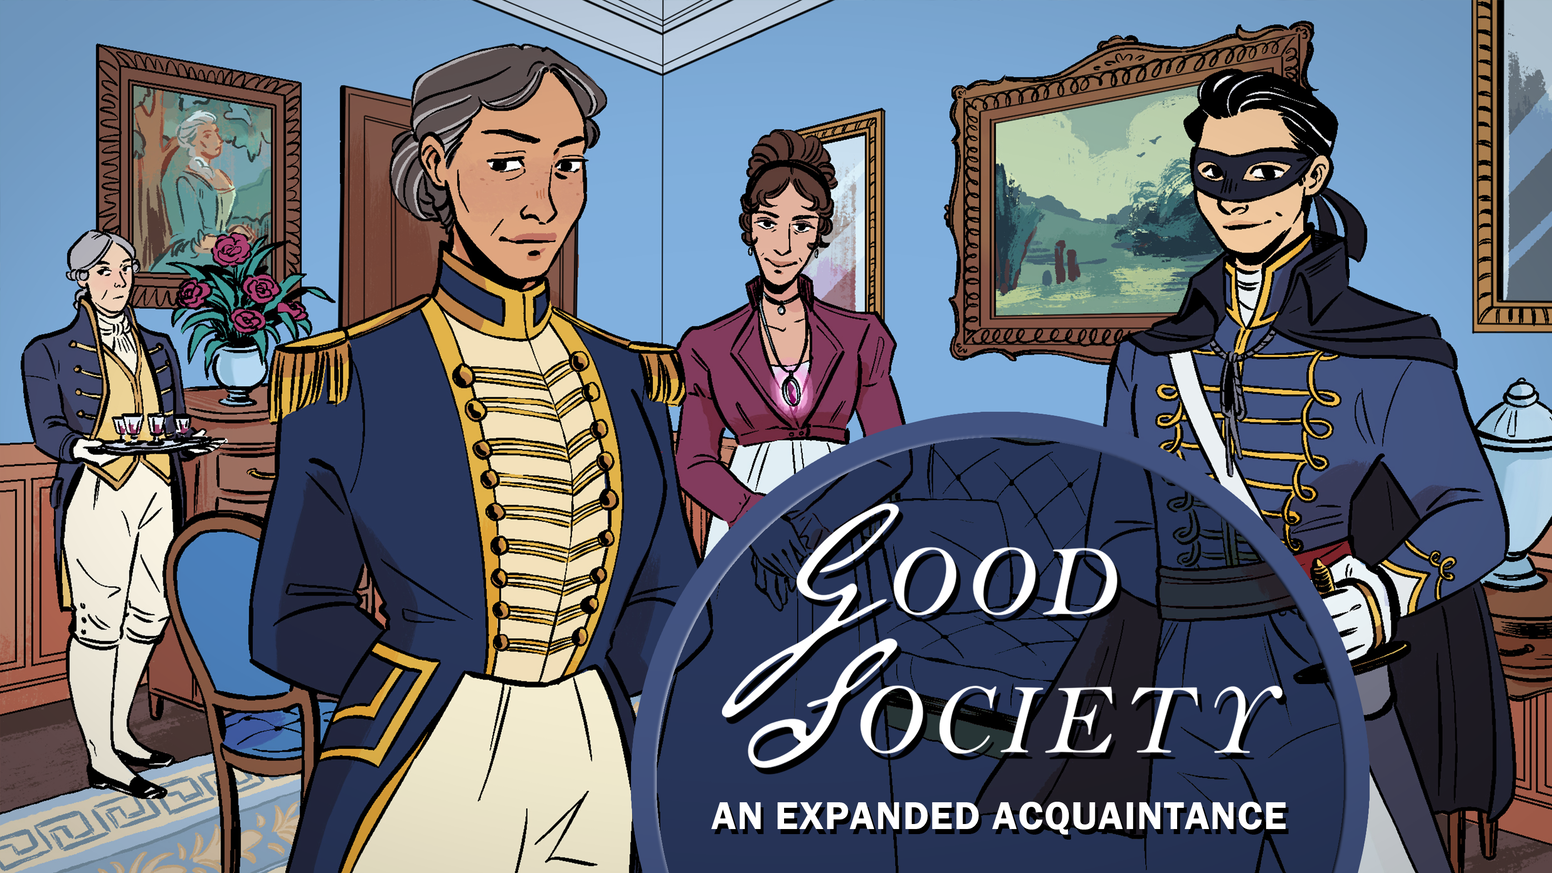 Tell regency tales of magic, masked outlaws, servants & ambition with four expansions for Good Society: A Jane Austen RPG in one book.